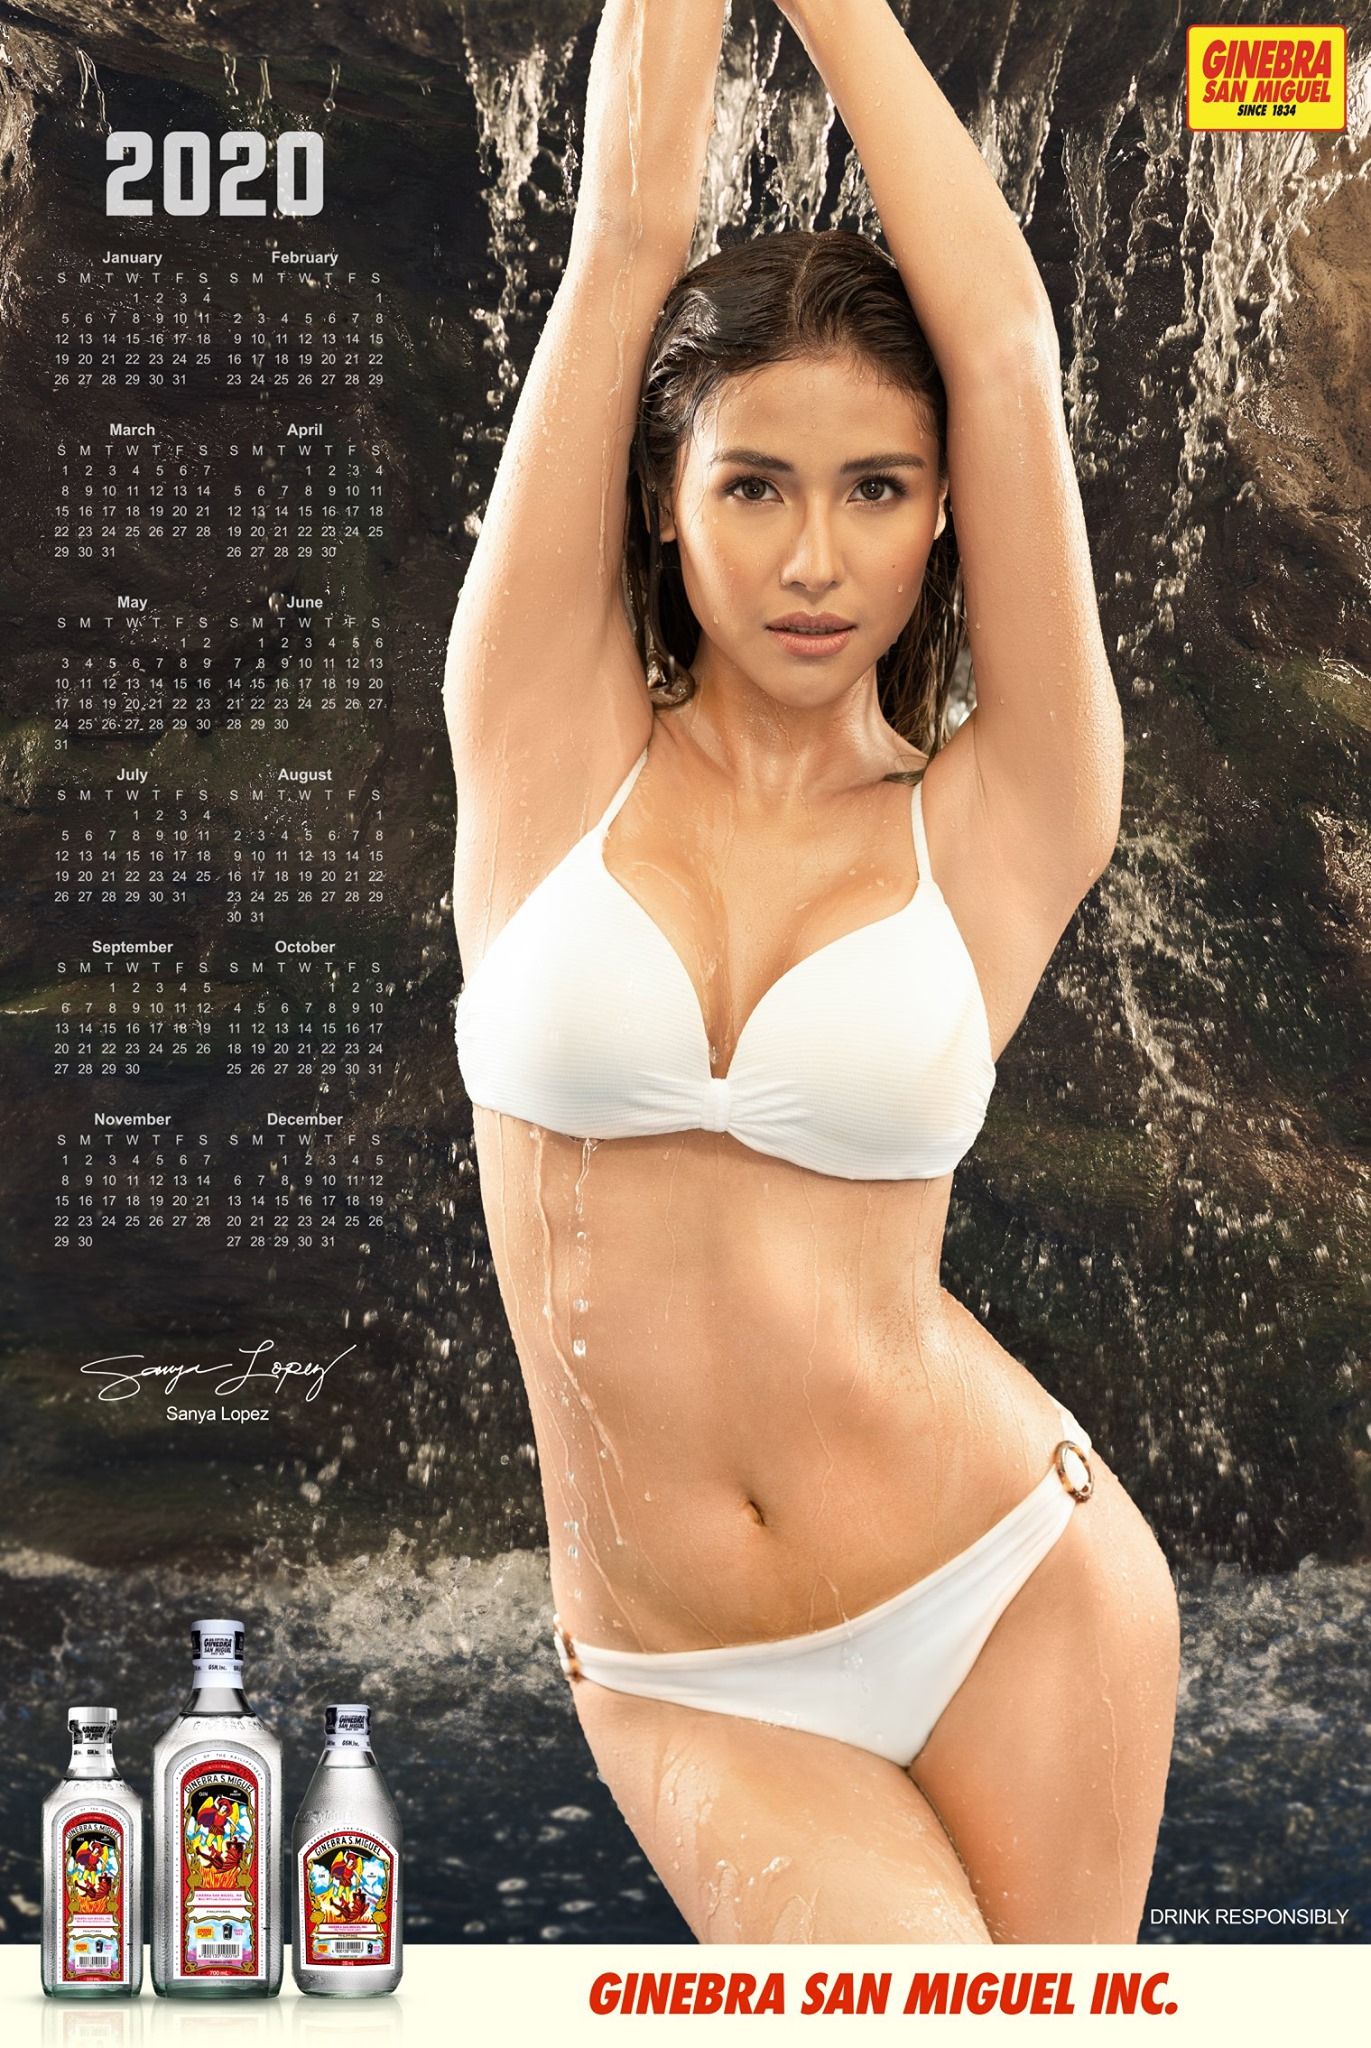 Sanya Lopez Reveals As Ginebra San Miguel 2020 Calendar Girl